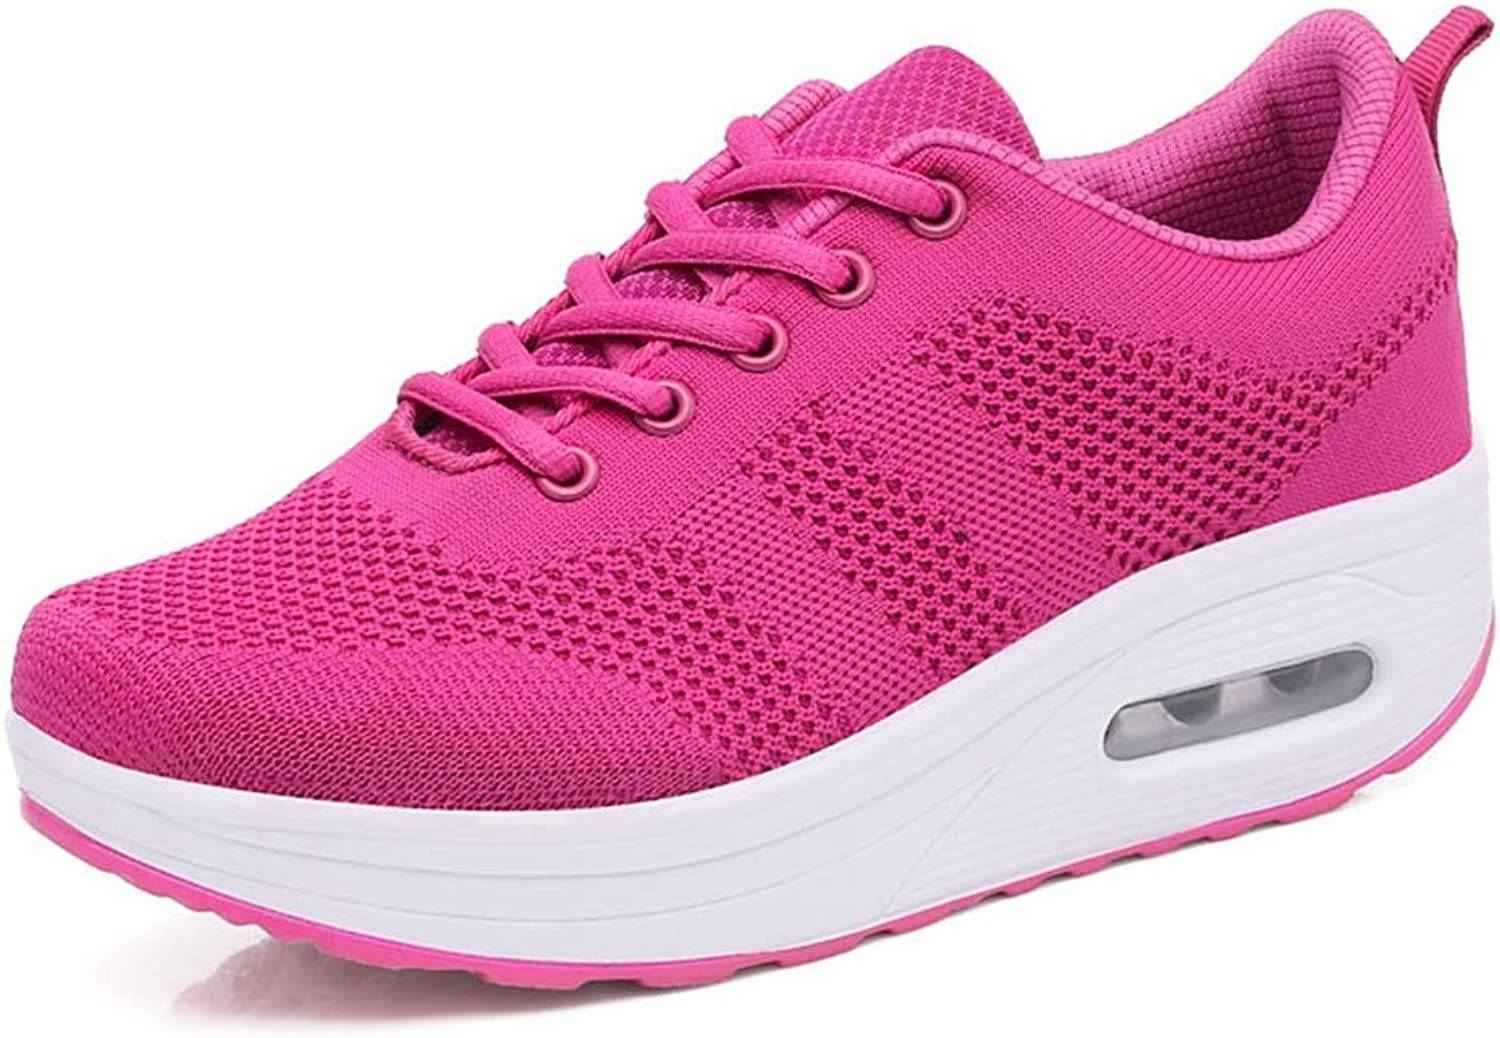 ASO-SLING Women's Wedge Sneakers Breathable Mesh Lace up Fitness Walking shoes Comfortable Lightweight Running shoes